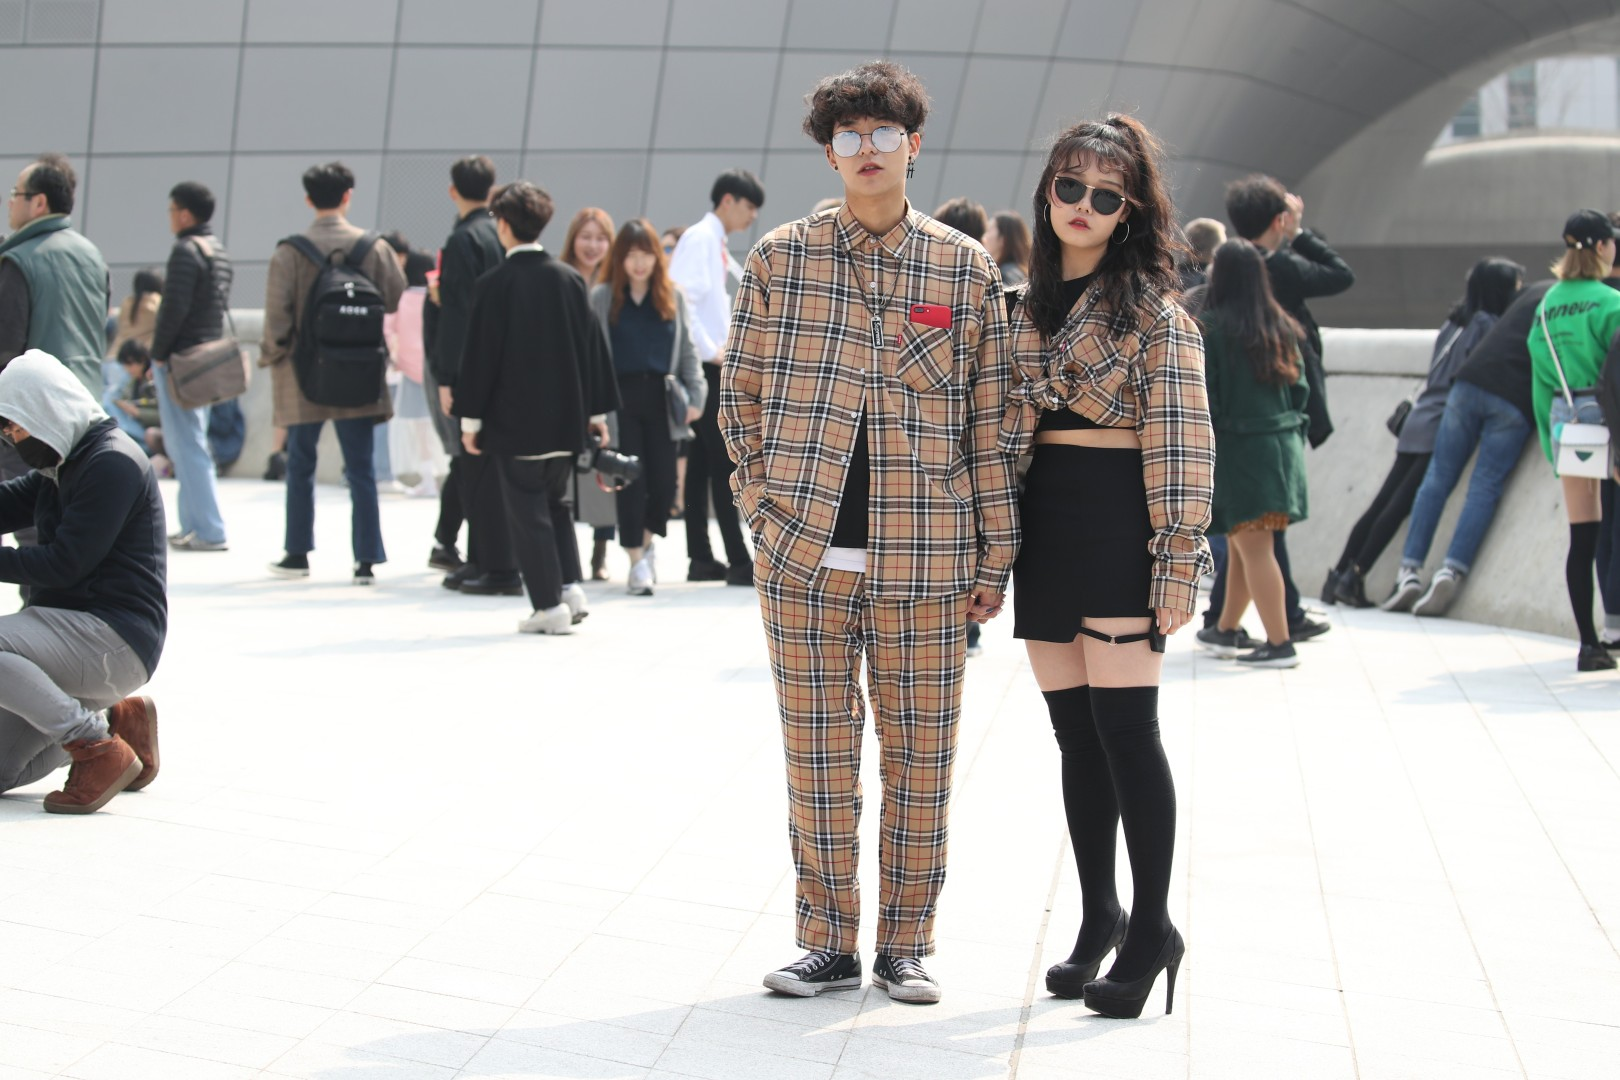 77671eef442 Seoul Fashion Week  nine of the coolest looks from South Korea ...